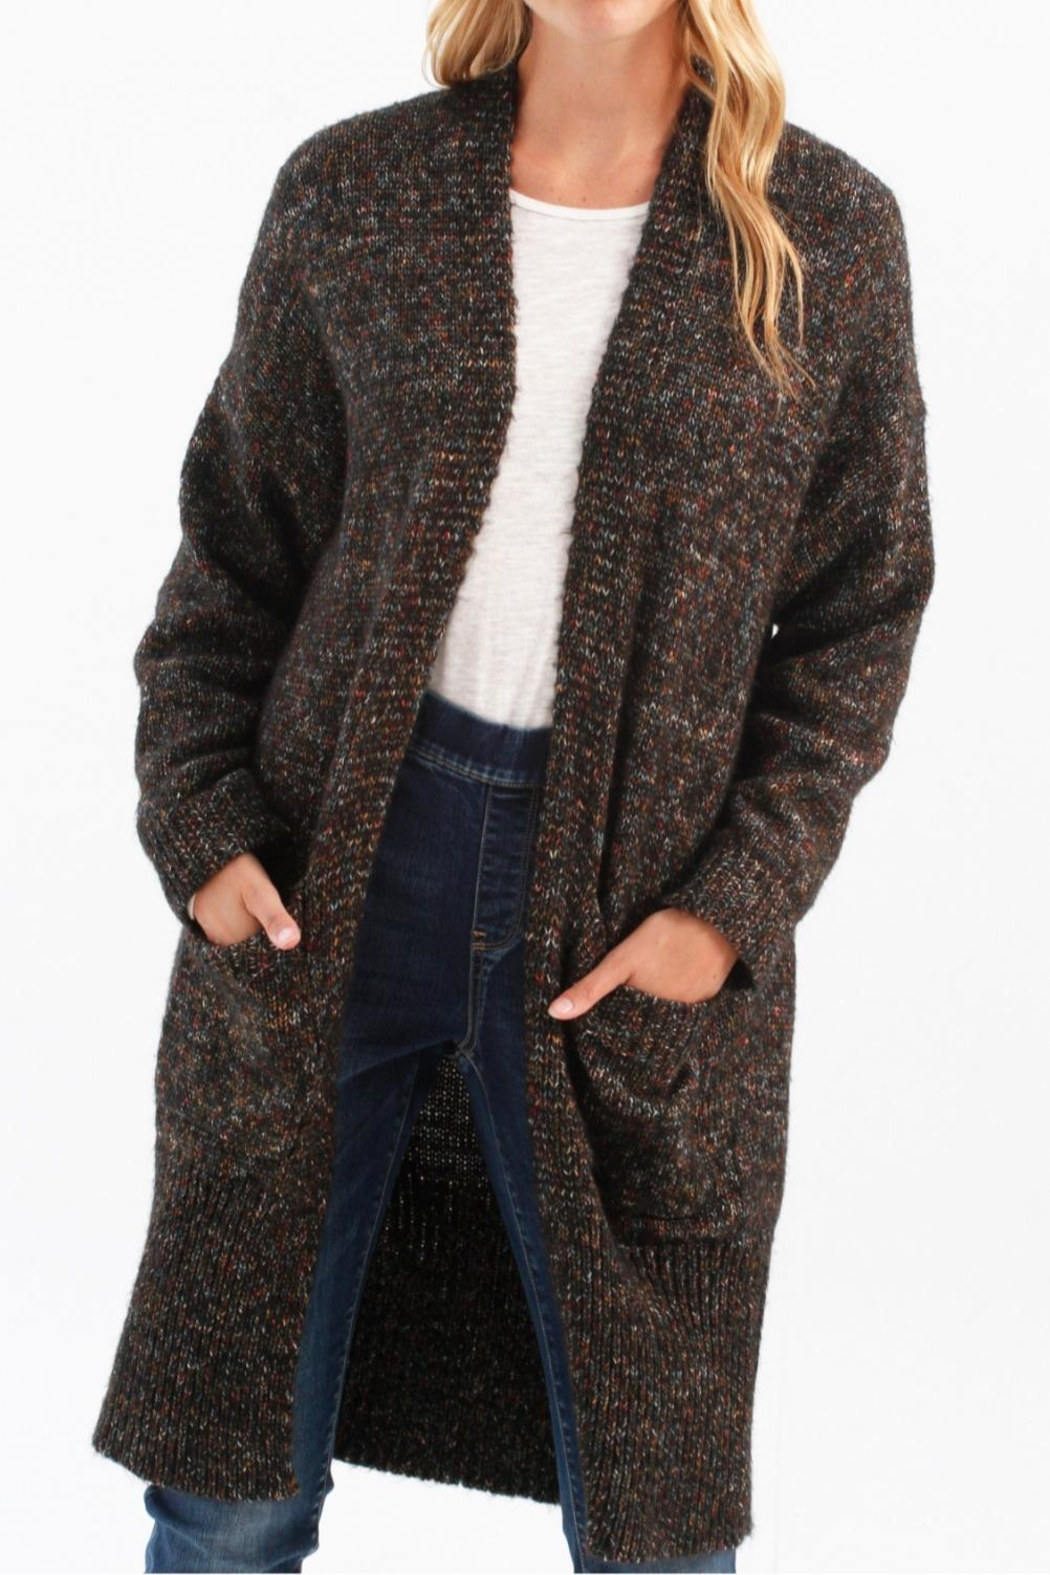 Charlie B. Multi Cardie With Pockets - Main Image